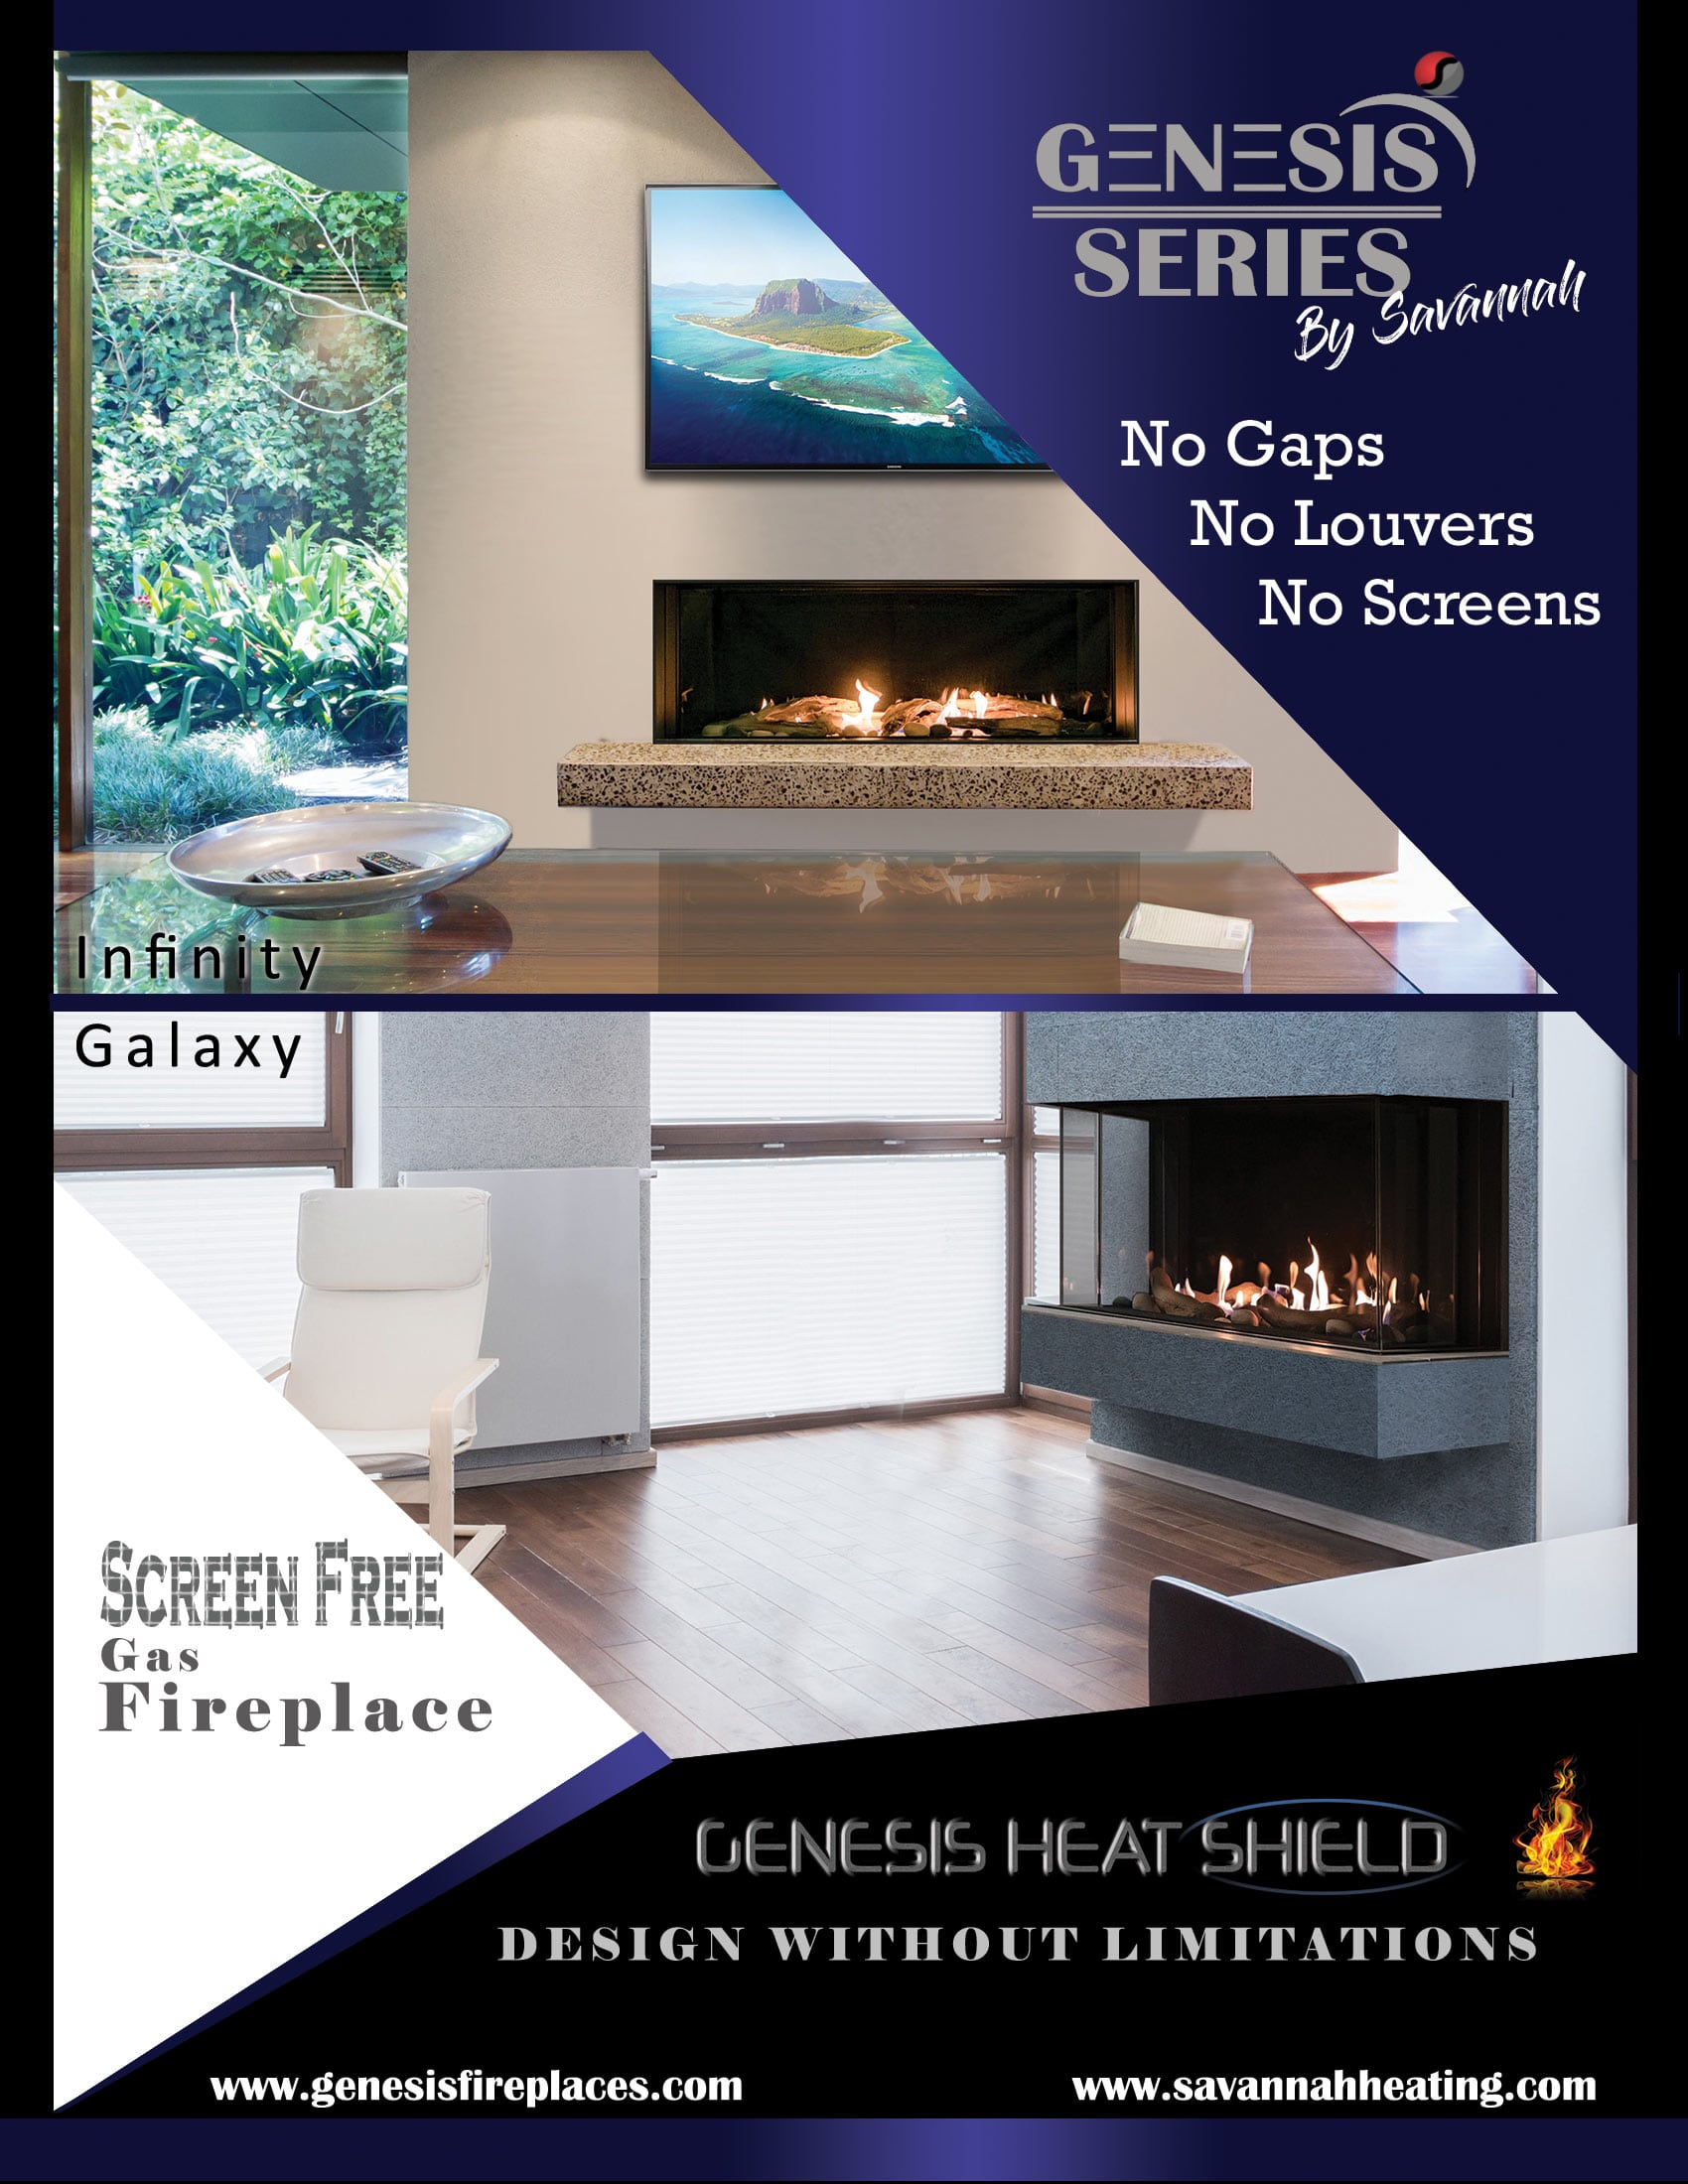 Genesis Brochure by Savannah Heating